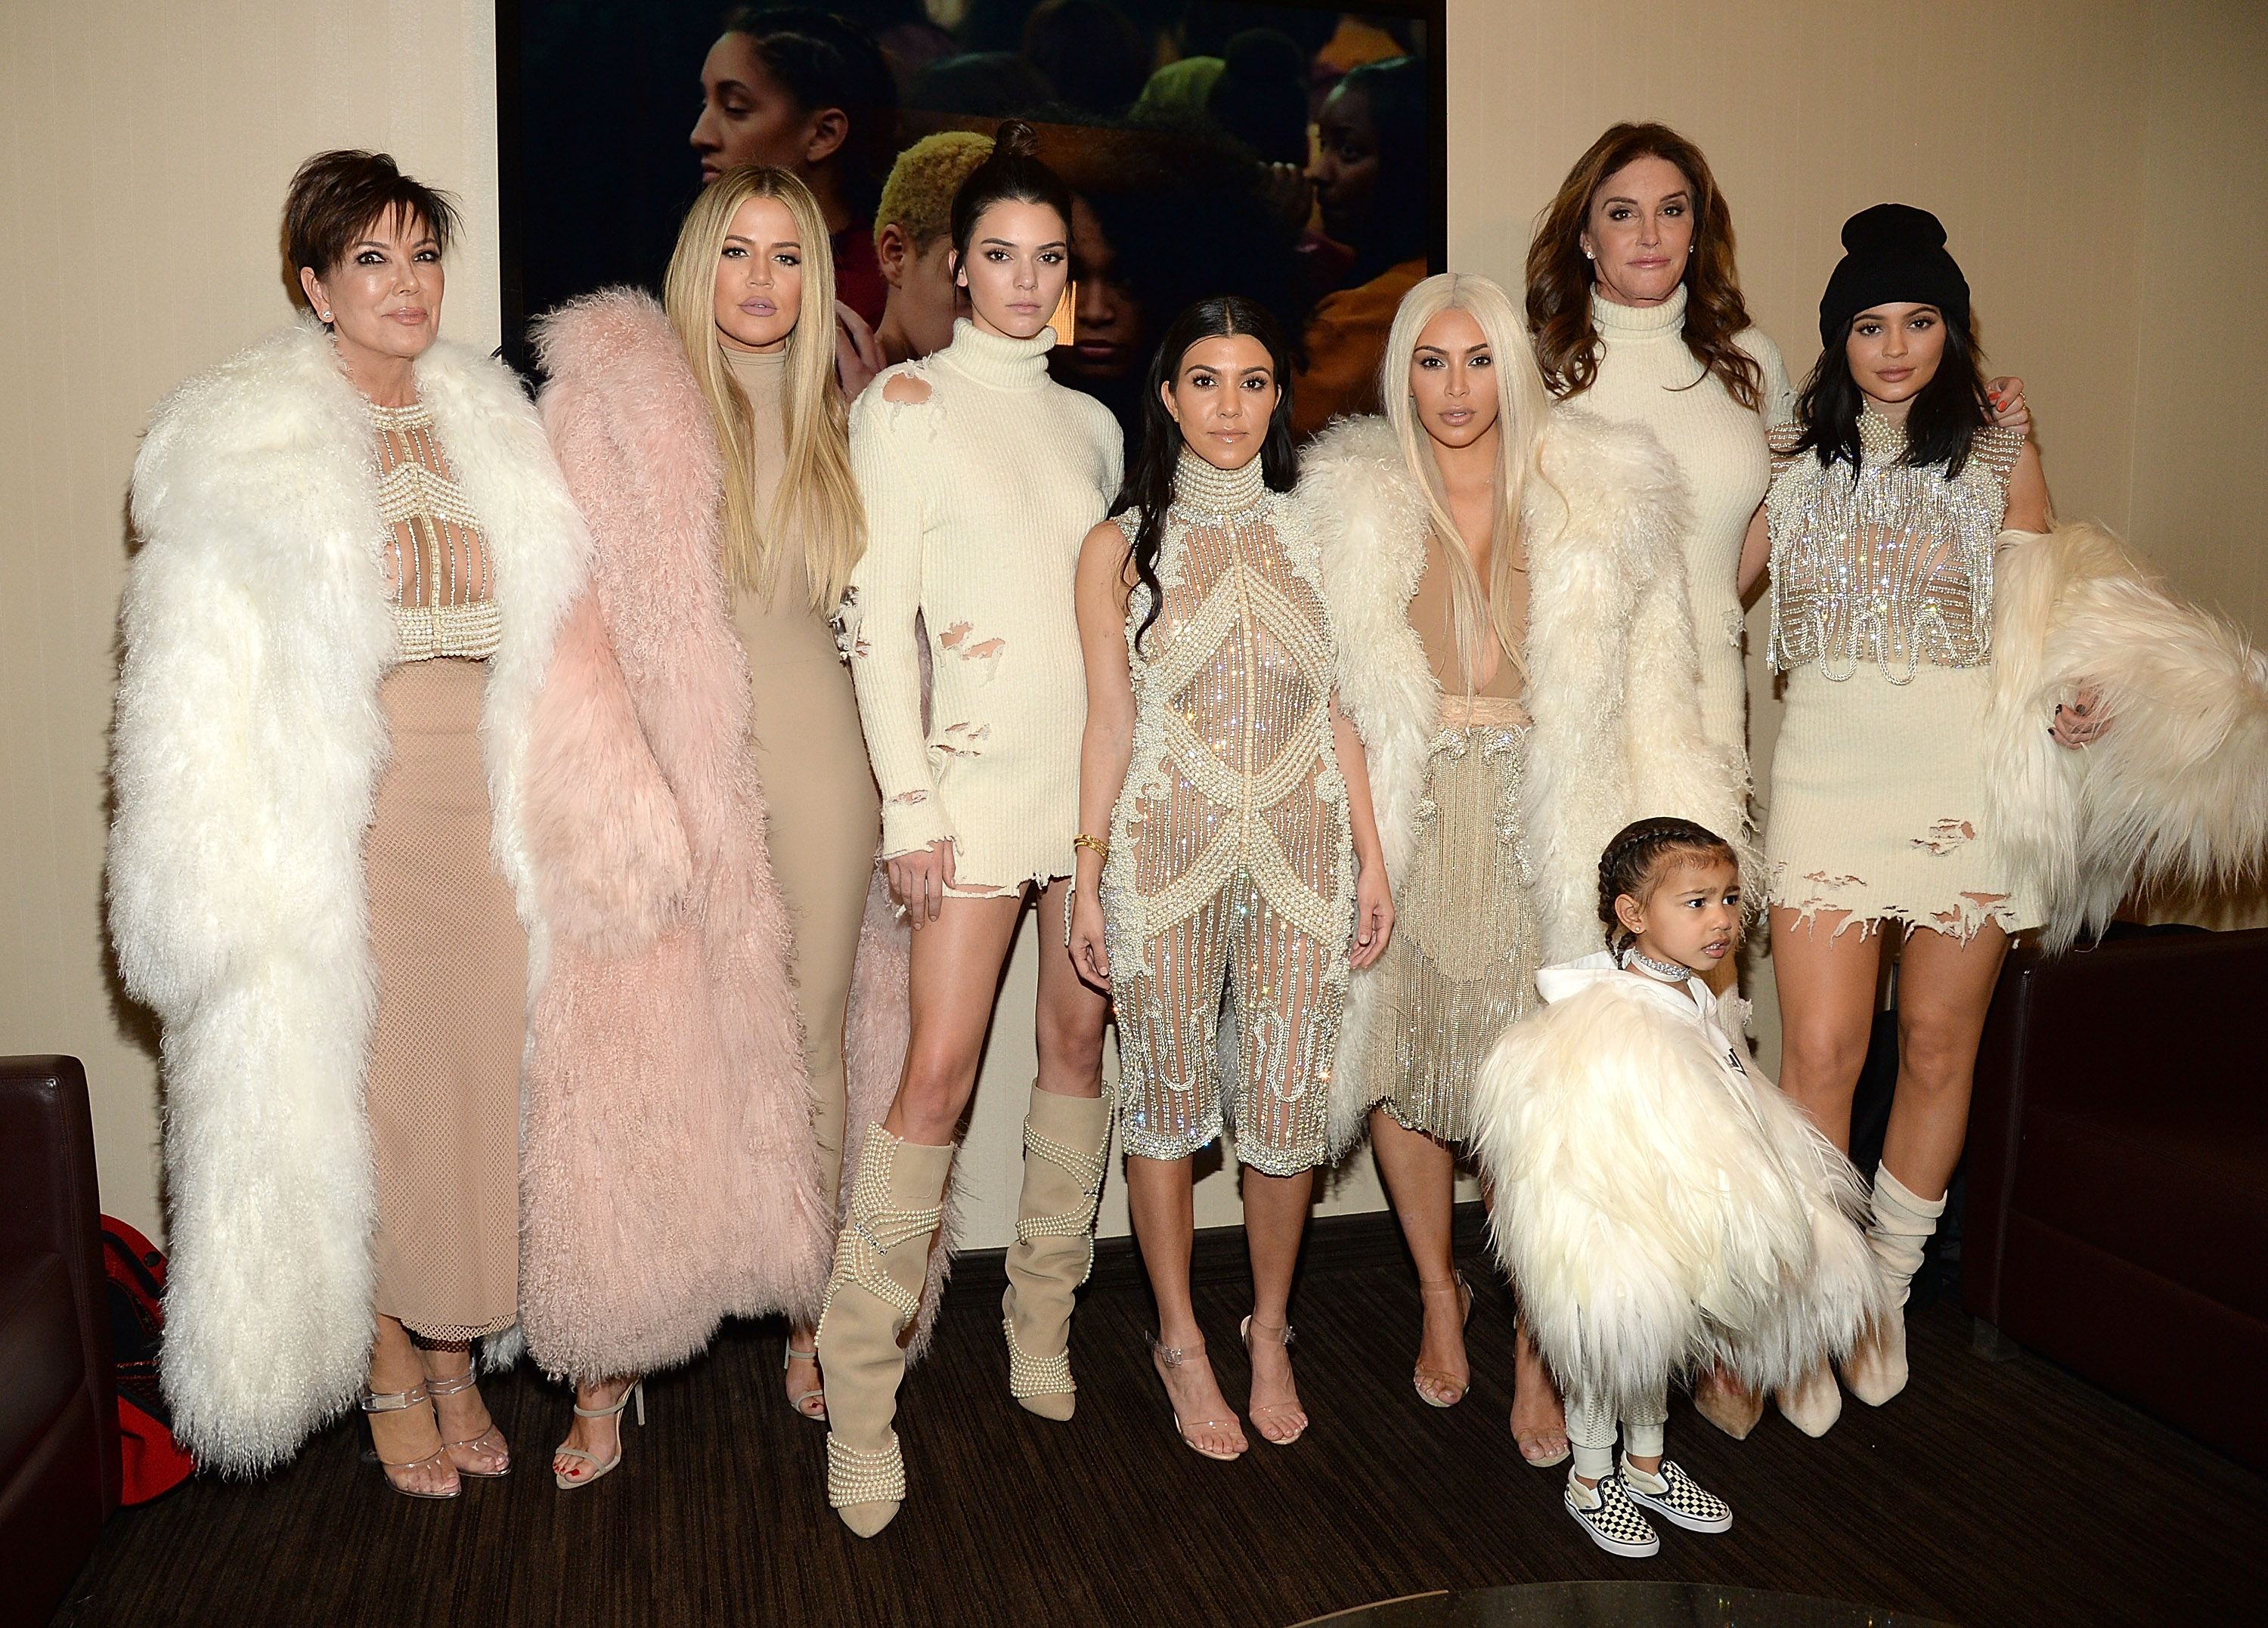 How to Decorate Your Home, According to the Kardashians